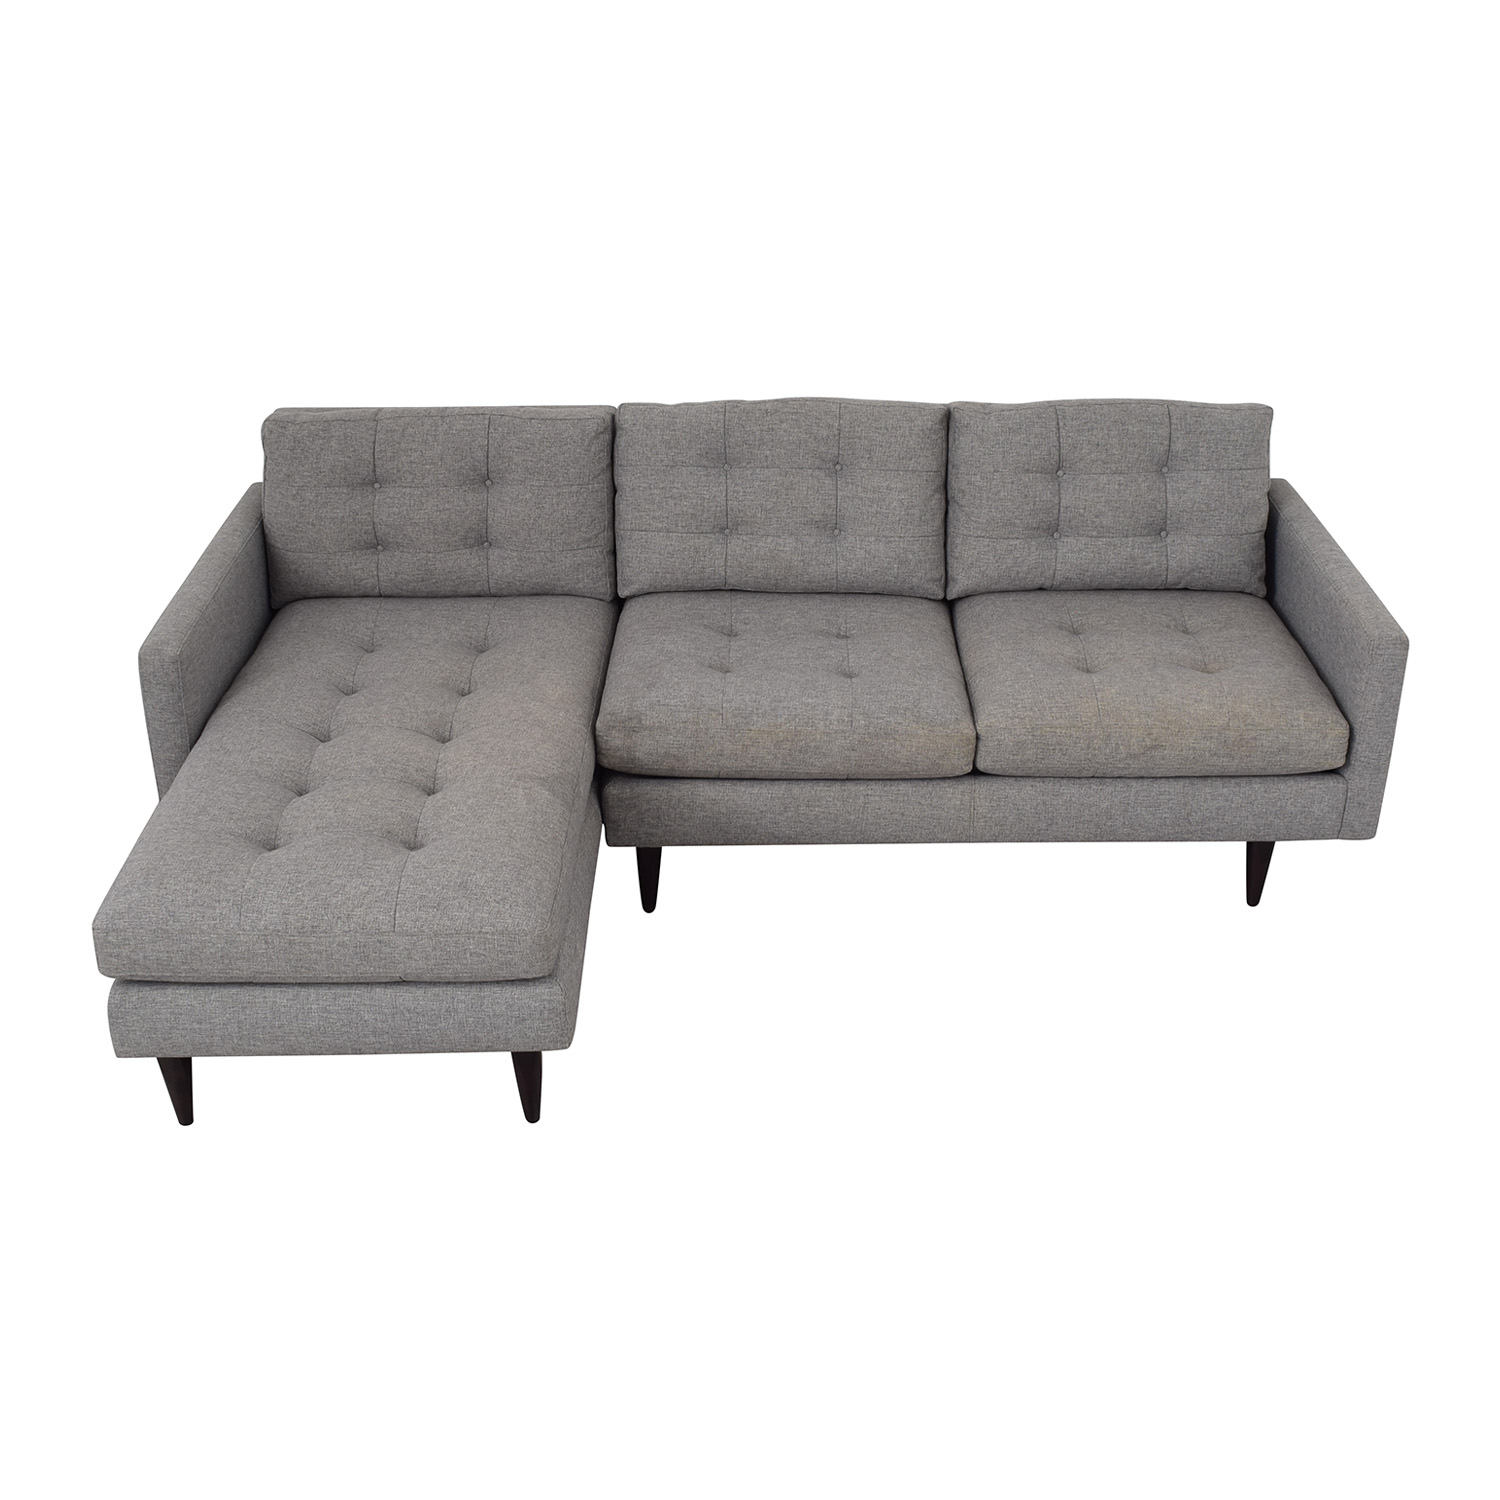 Crate & Barrel Crate & Barrel Petrie Mid Century Sectional Sofa with Chaise pa